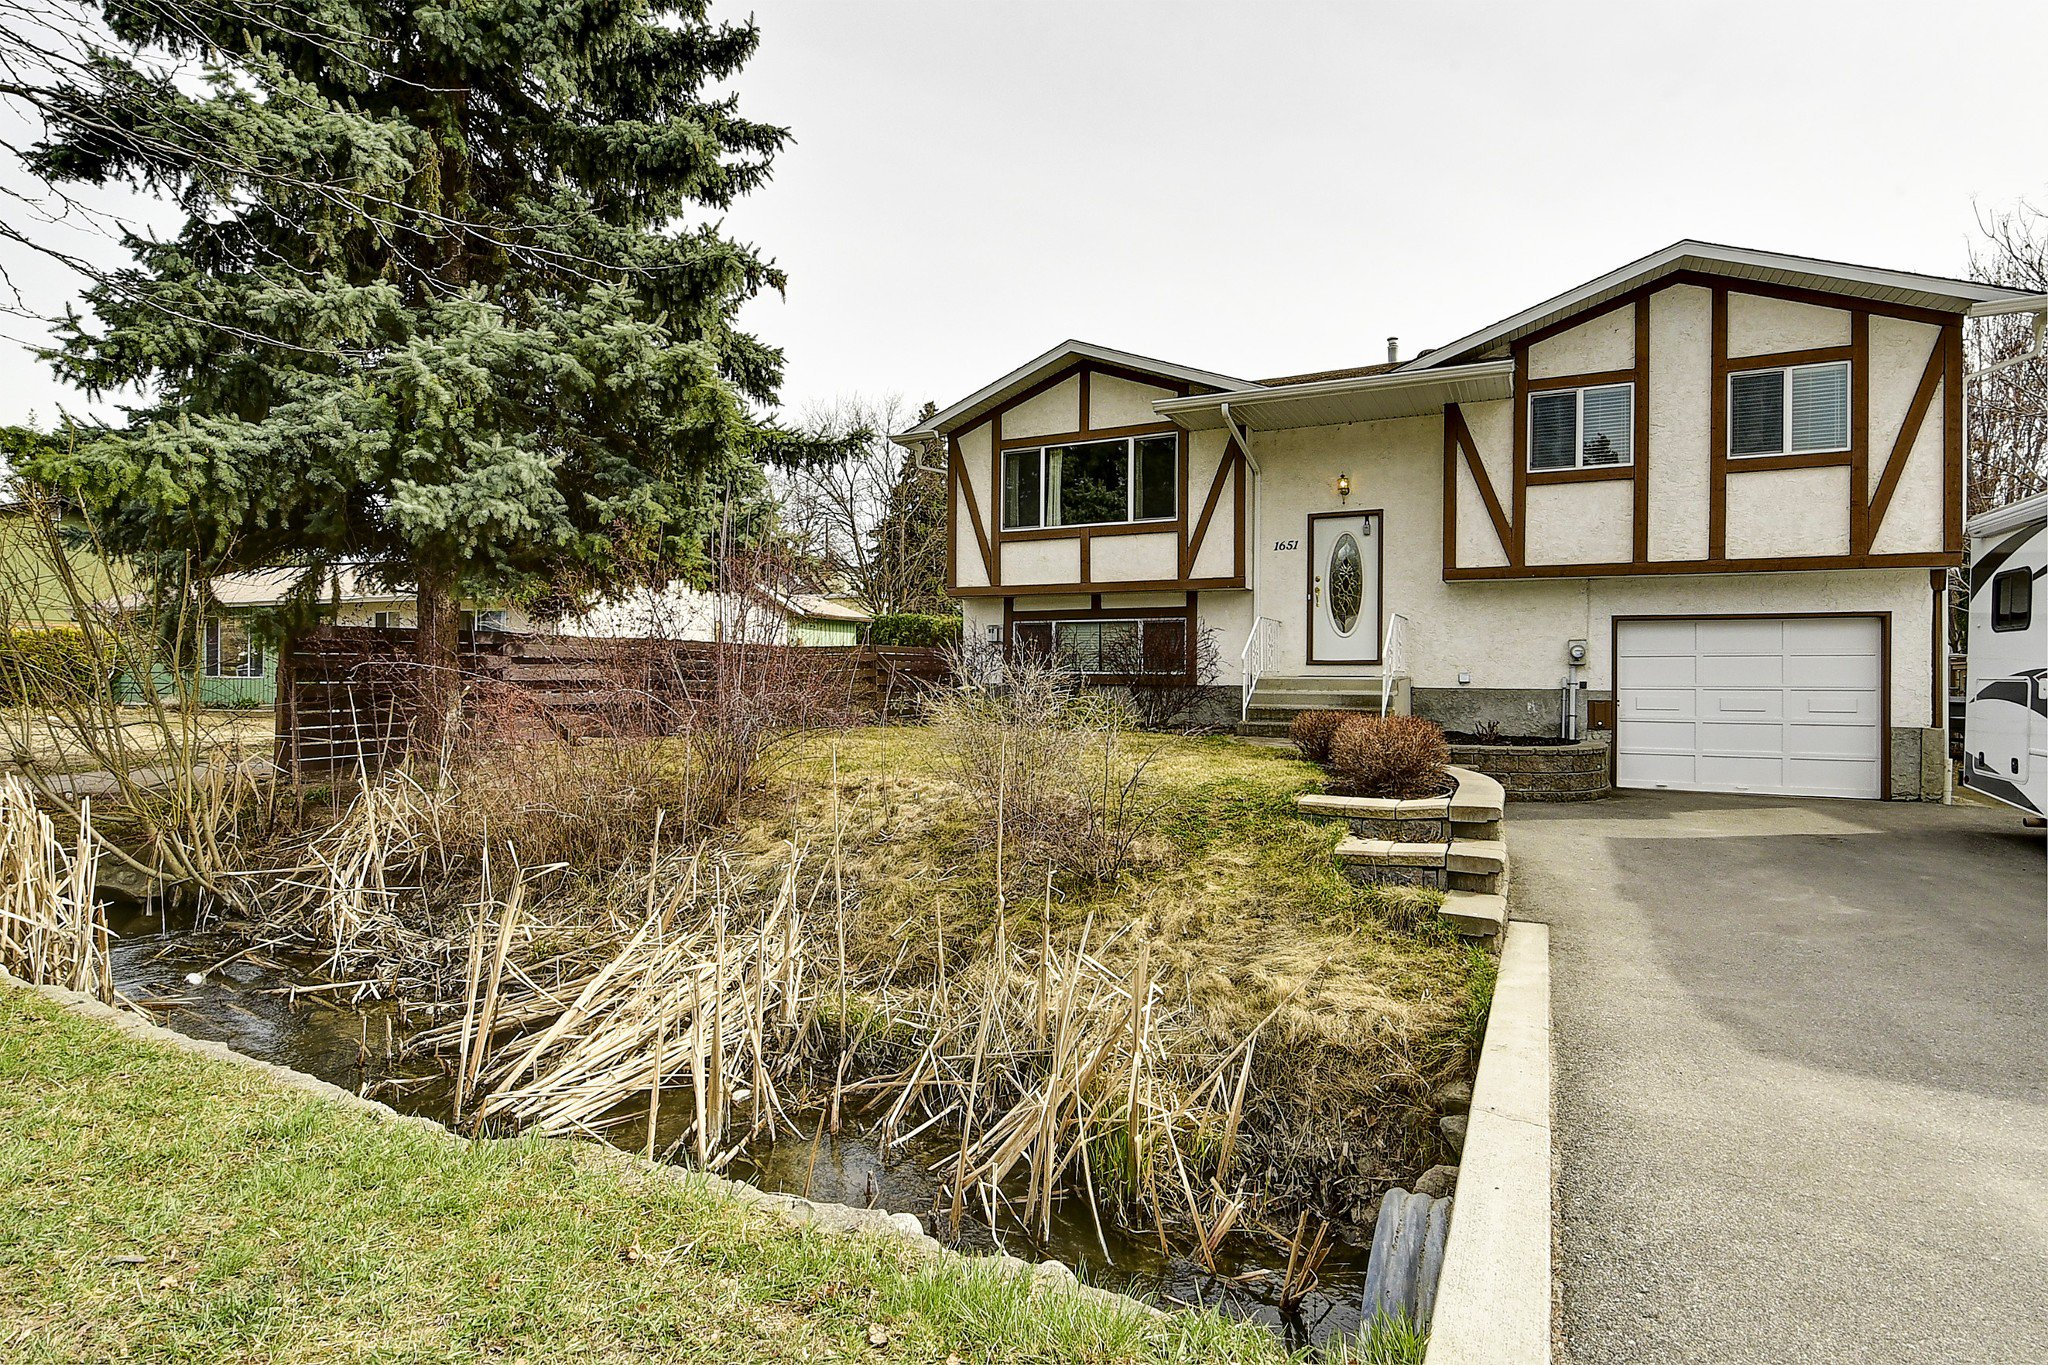 Main Photo: 1651 Blondeaux Crescent in Kelowna: Glenmore House for sale (Central Okanagan)  : MLS®# 10202415